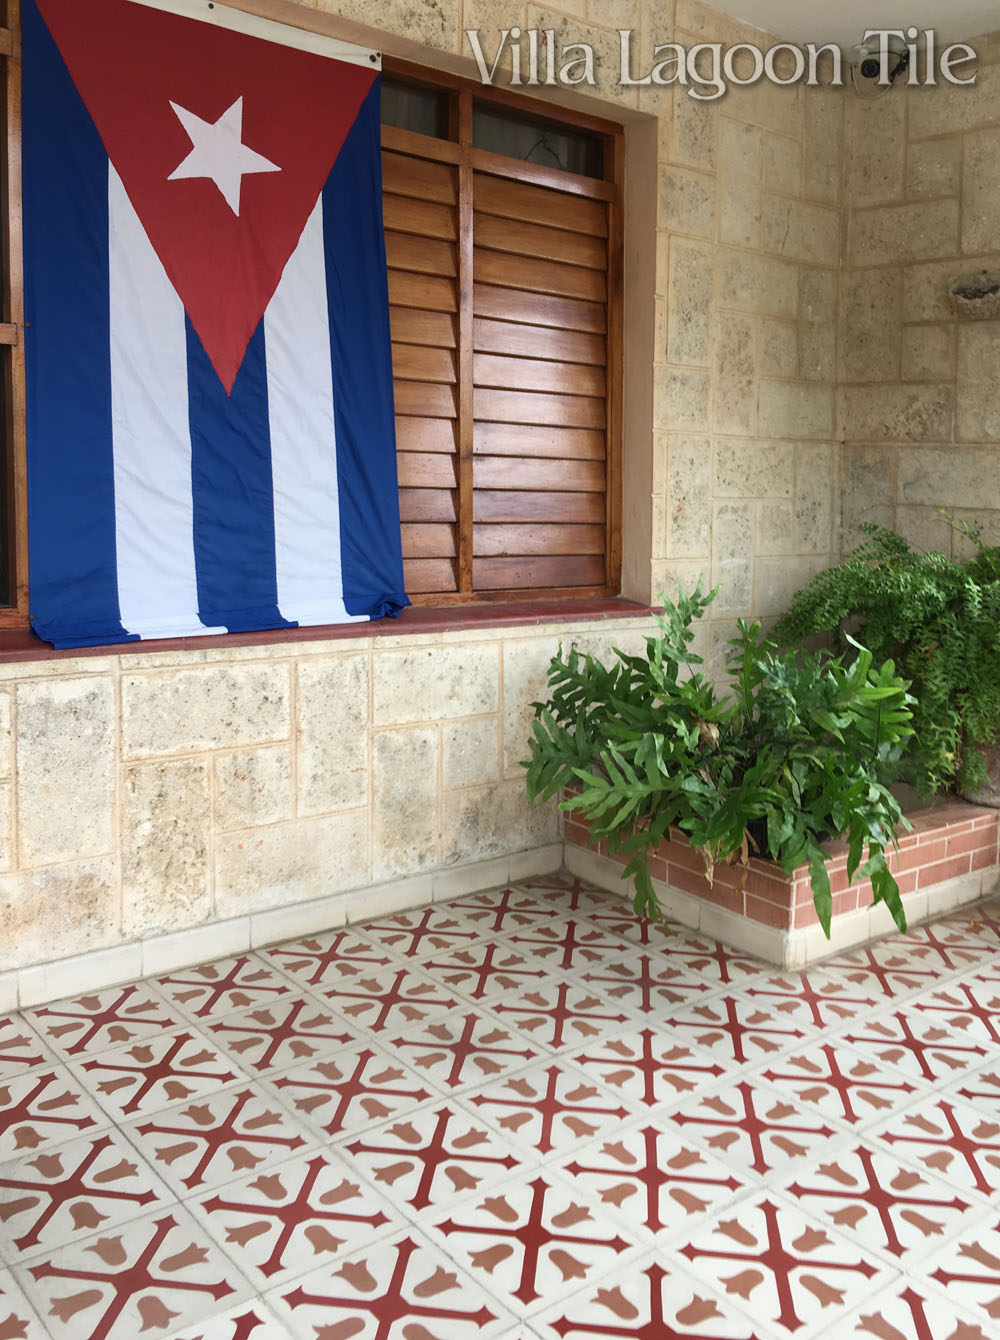 Cement tile on a front porch with a Cuban flag on display.